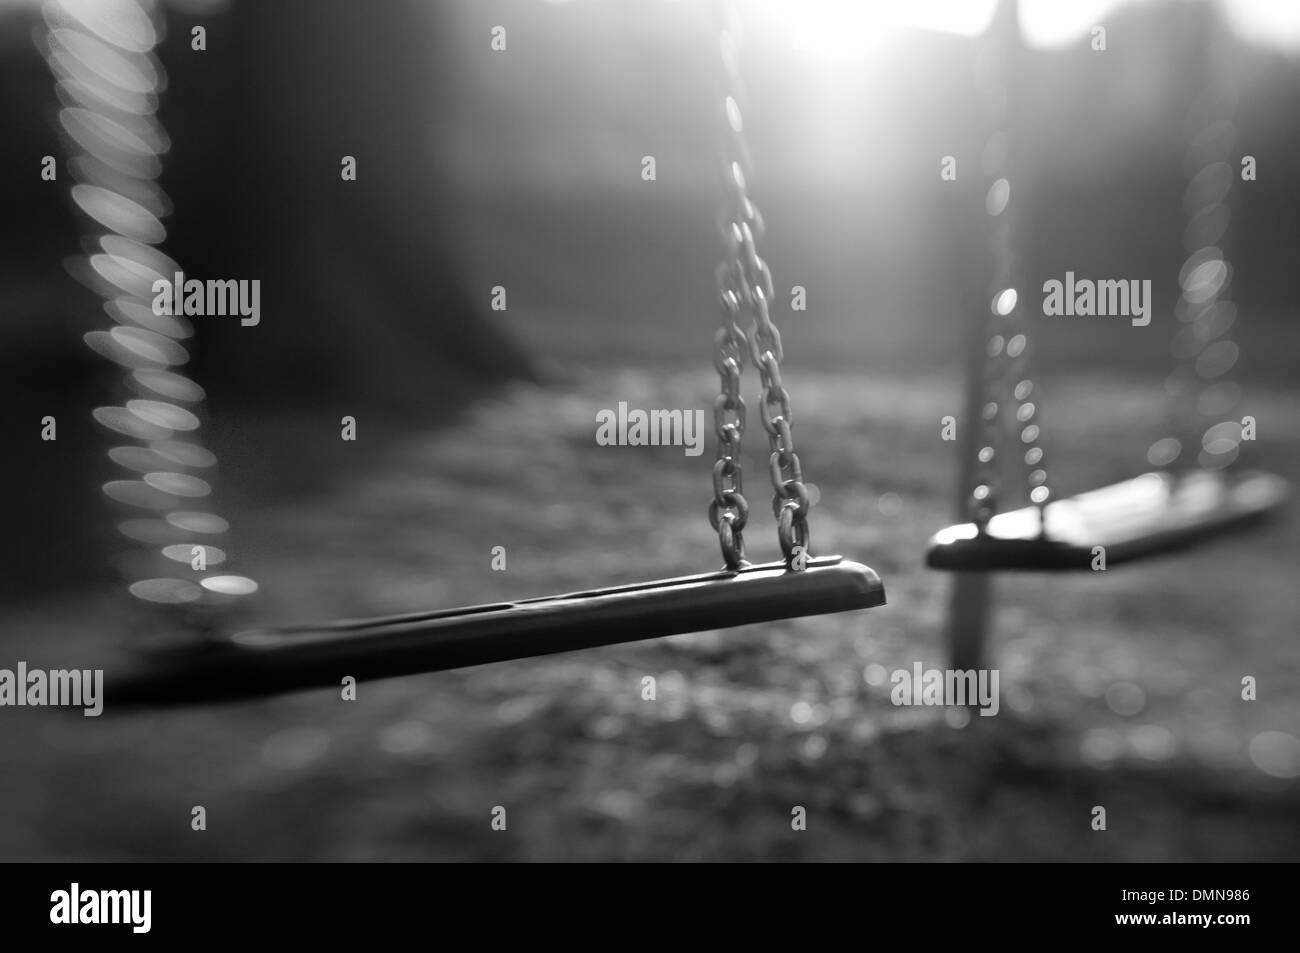 Abandoned swings on a playground - Stock Image